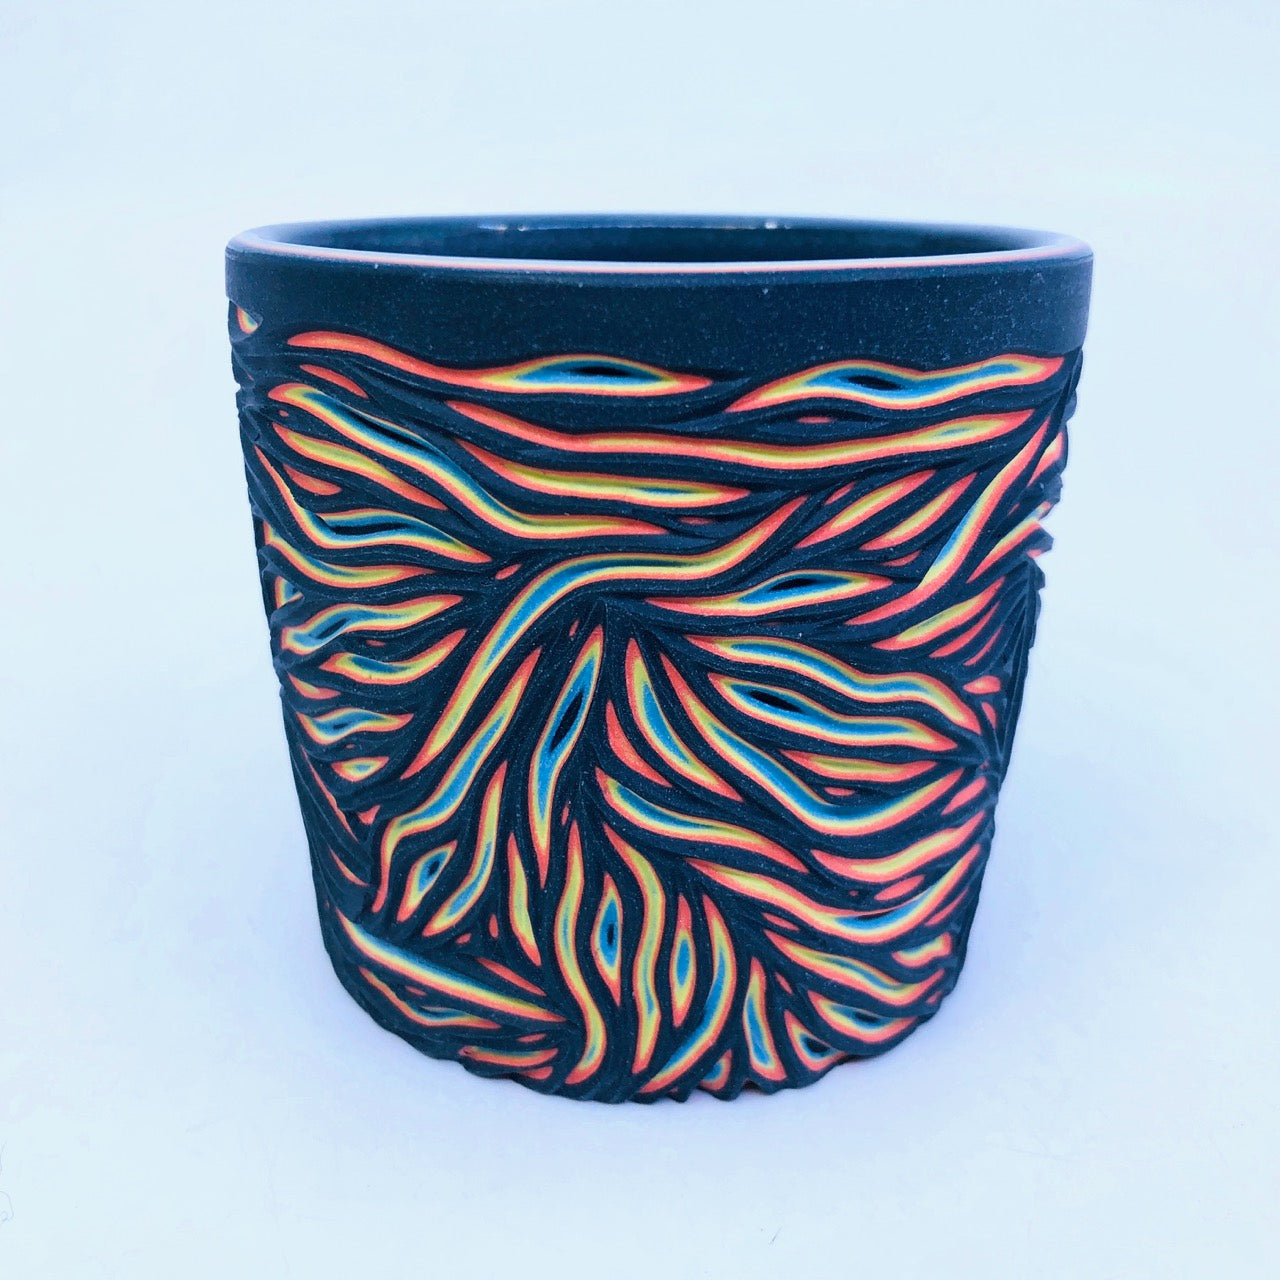 Intricate Black to Neon 5 Layer Tumbler